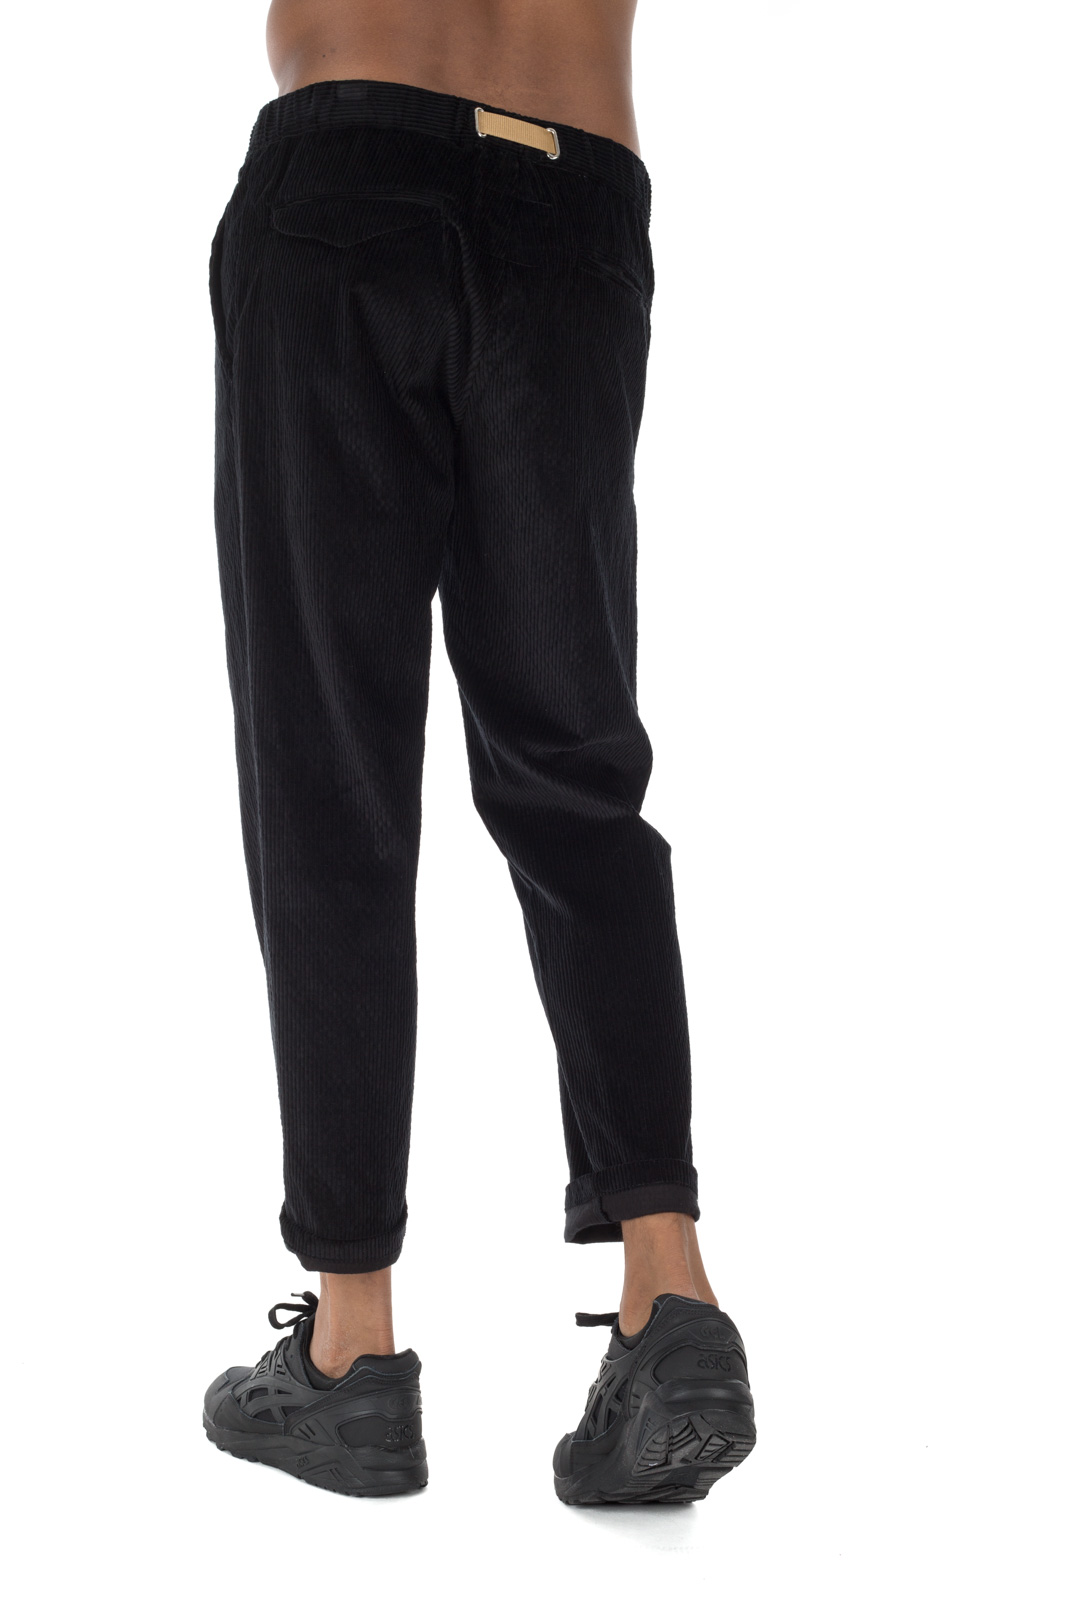 White Sand - Chino Velvet Black Trousers